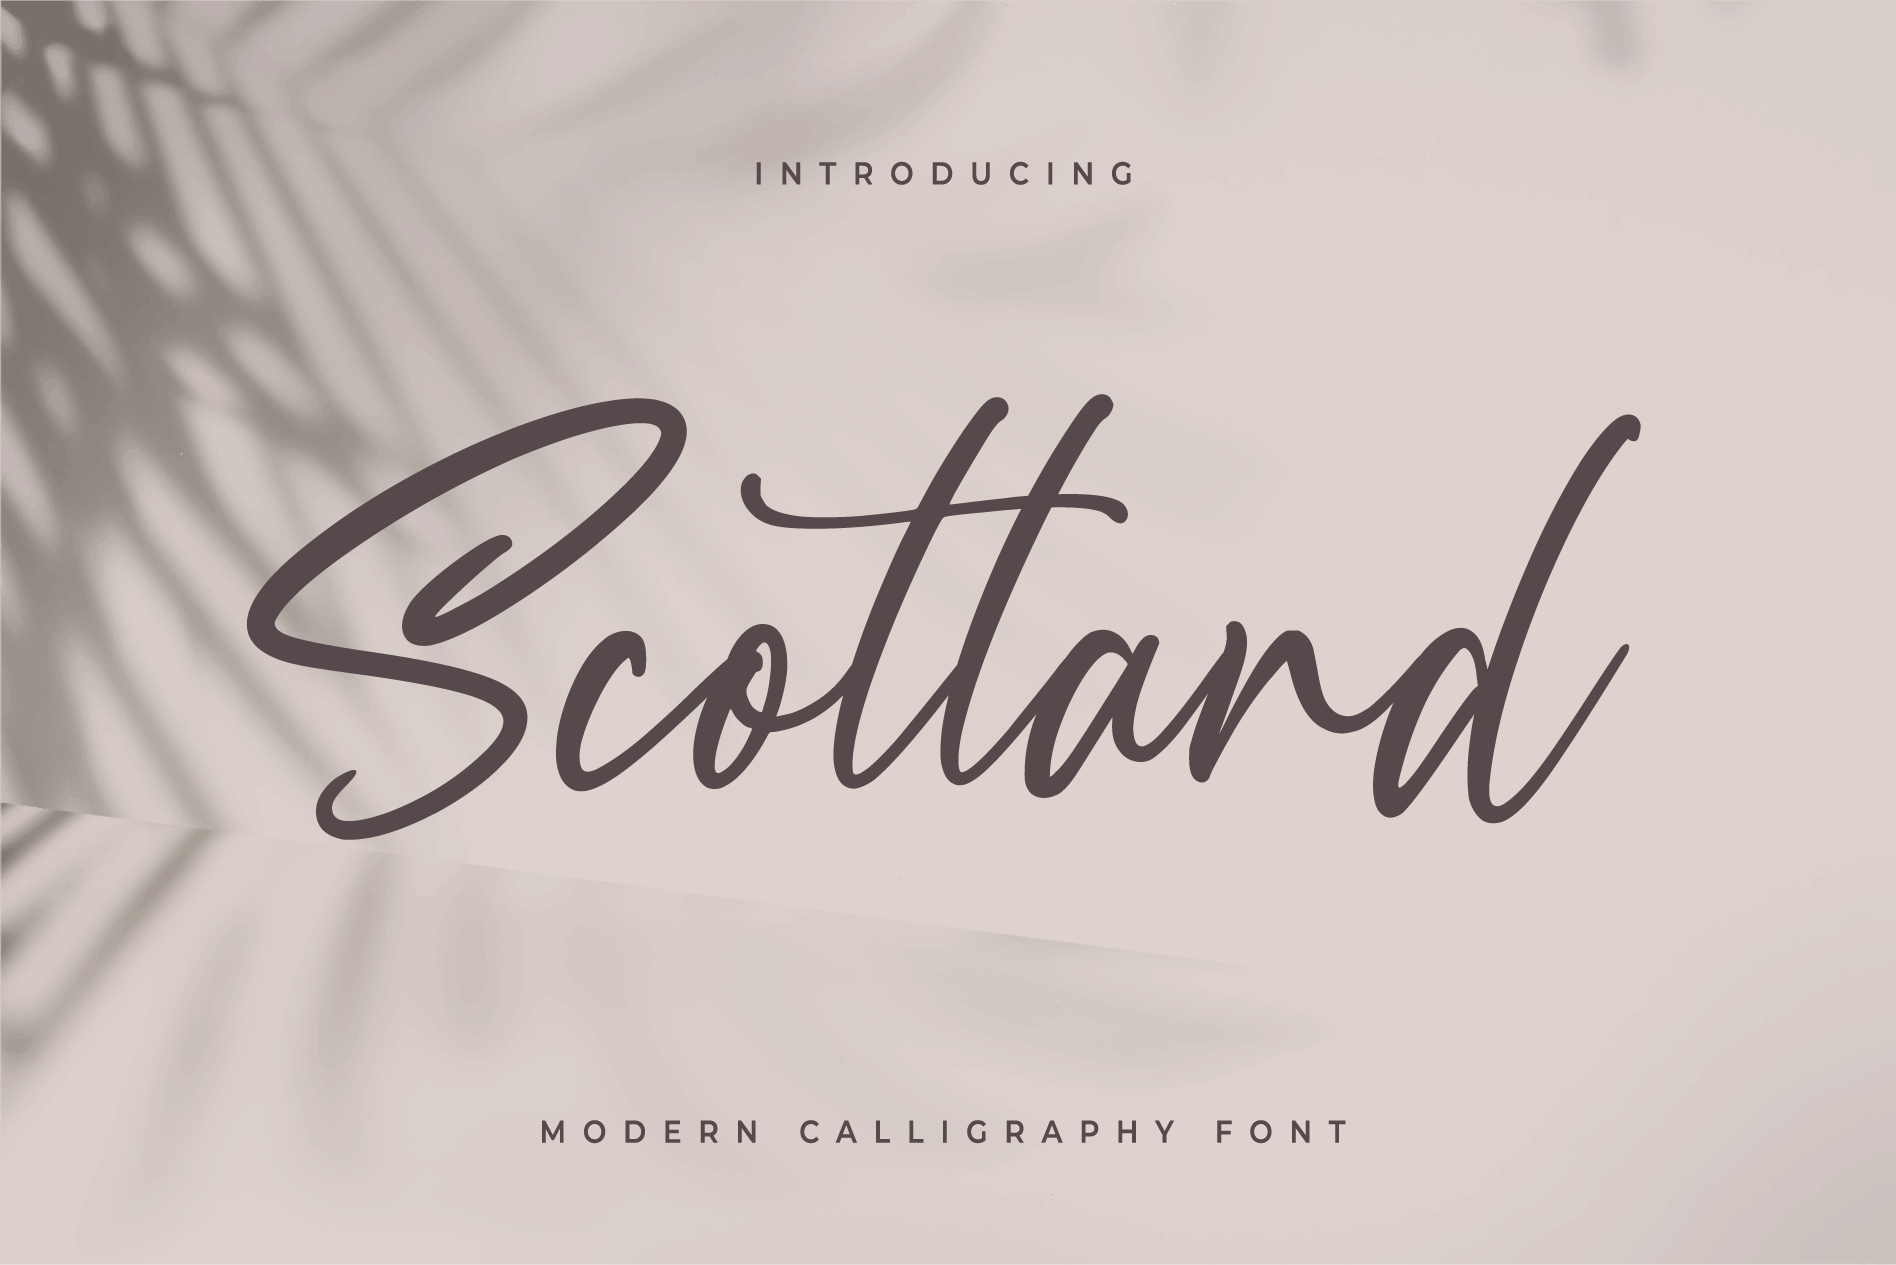 Scotland - Modern Calligraphy font example image 1